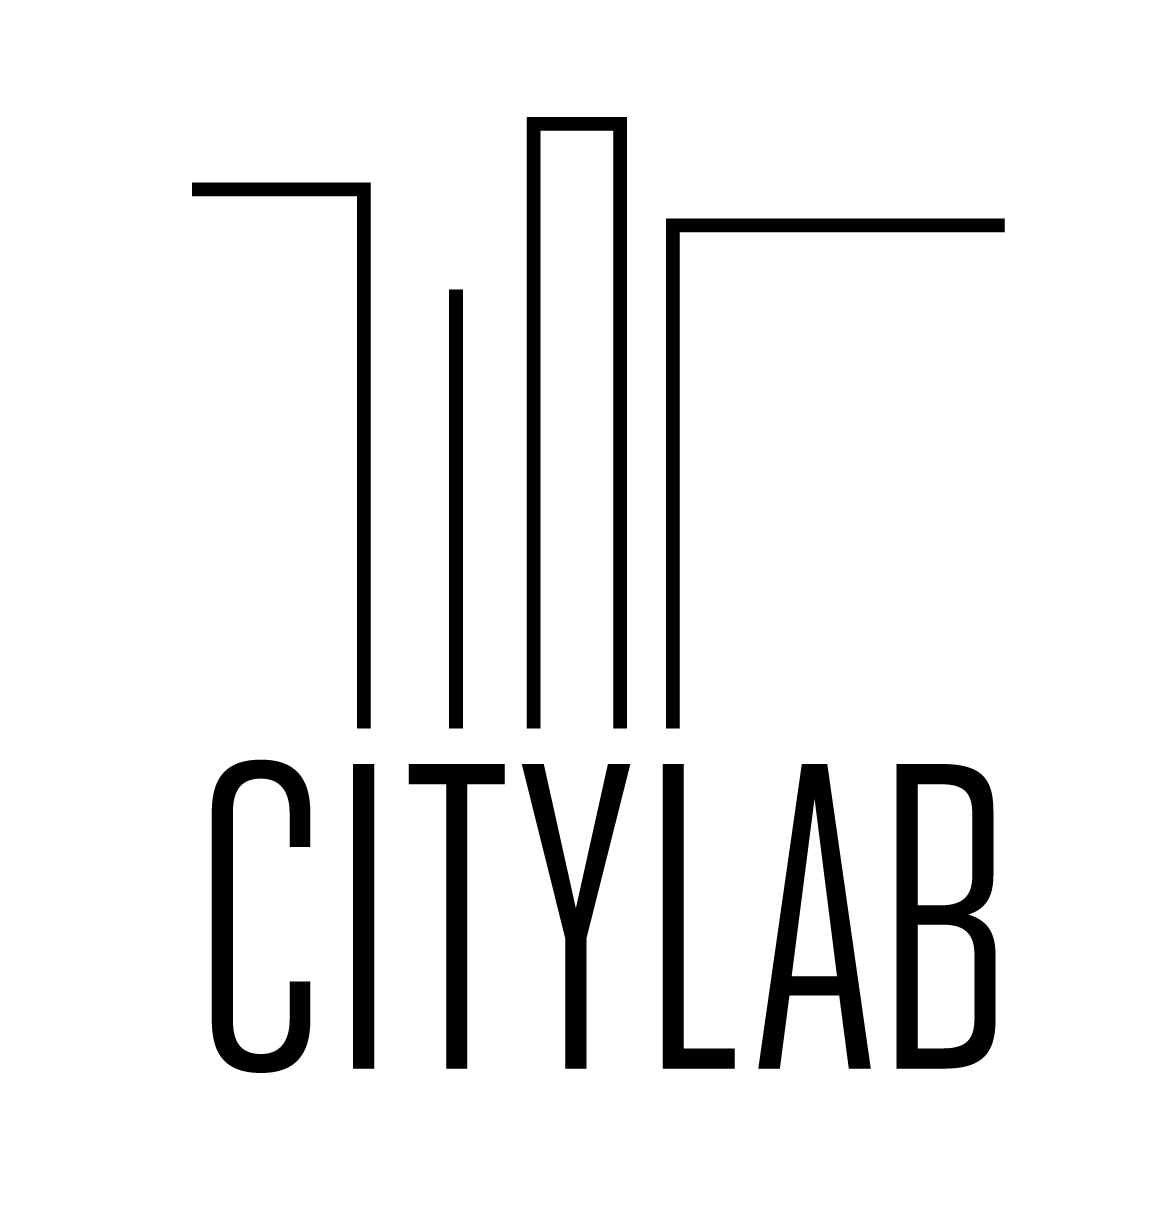 CityLab 2015: Urban Solutions to Global Challenges